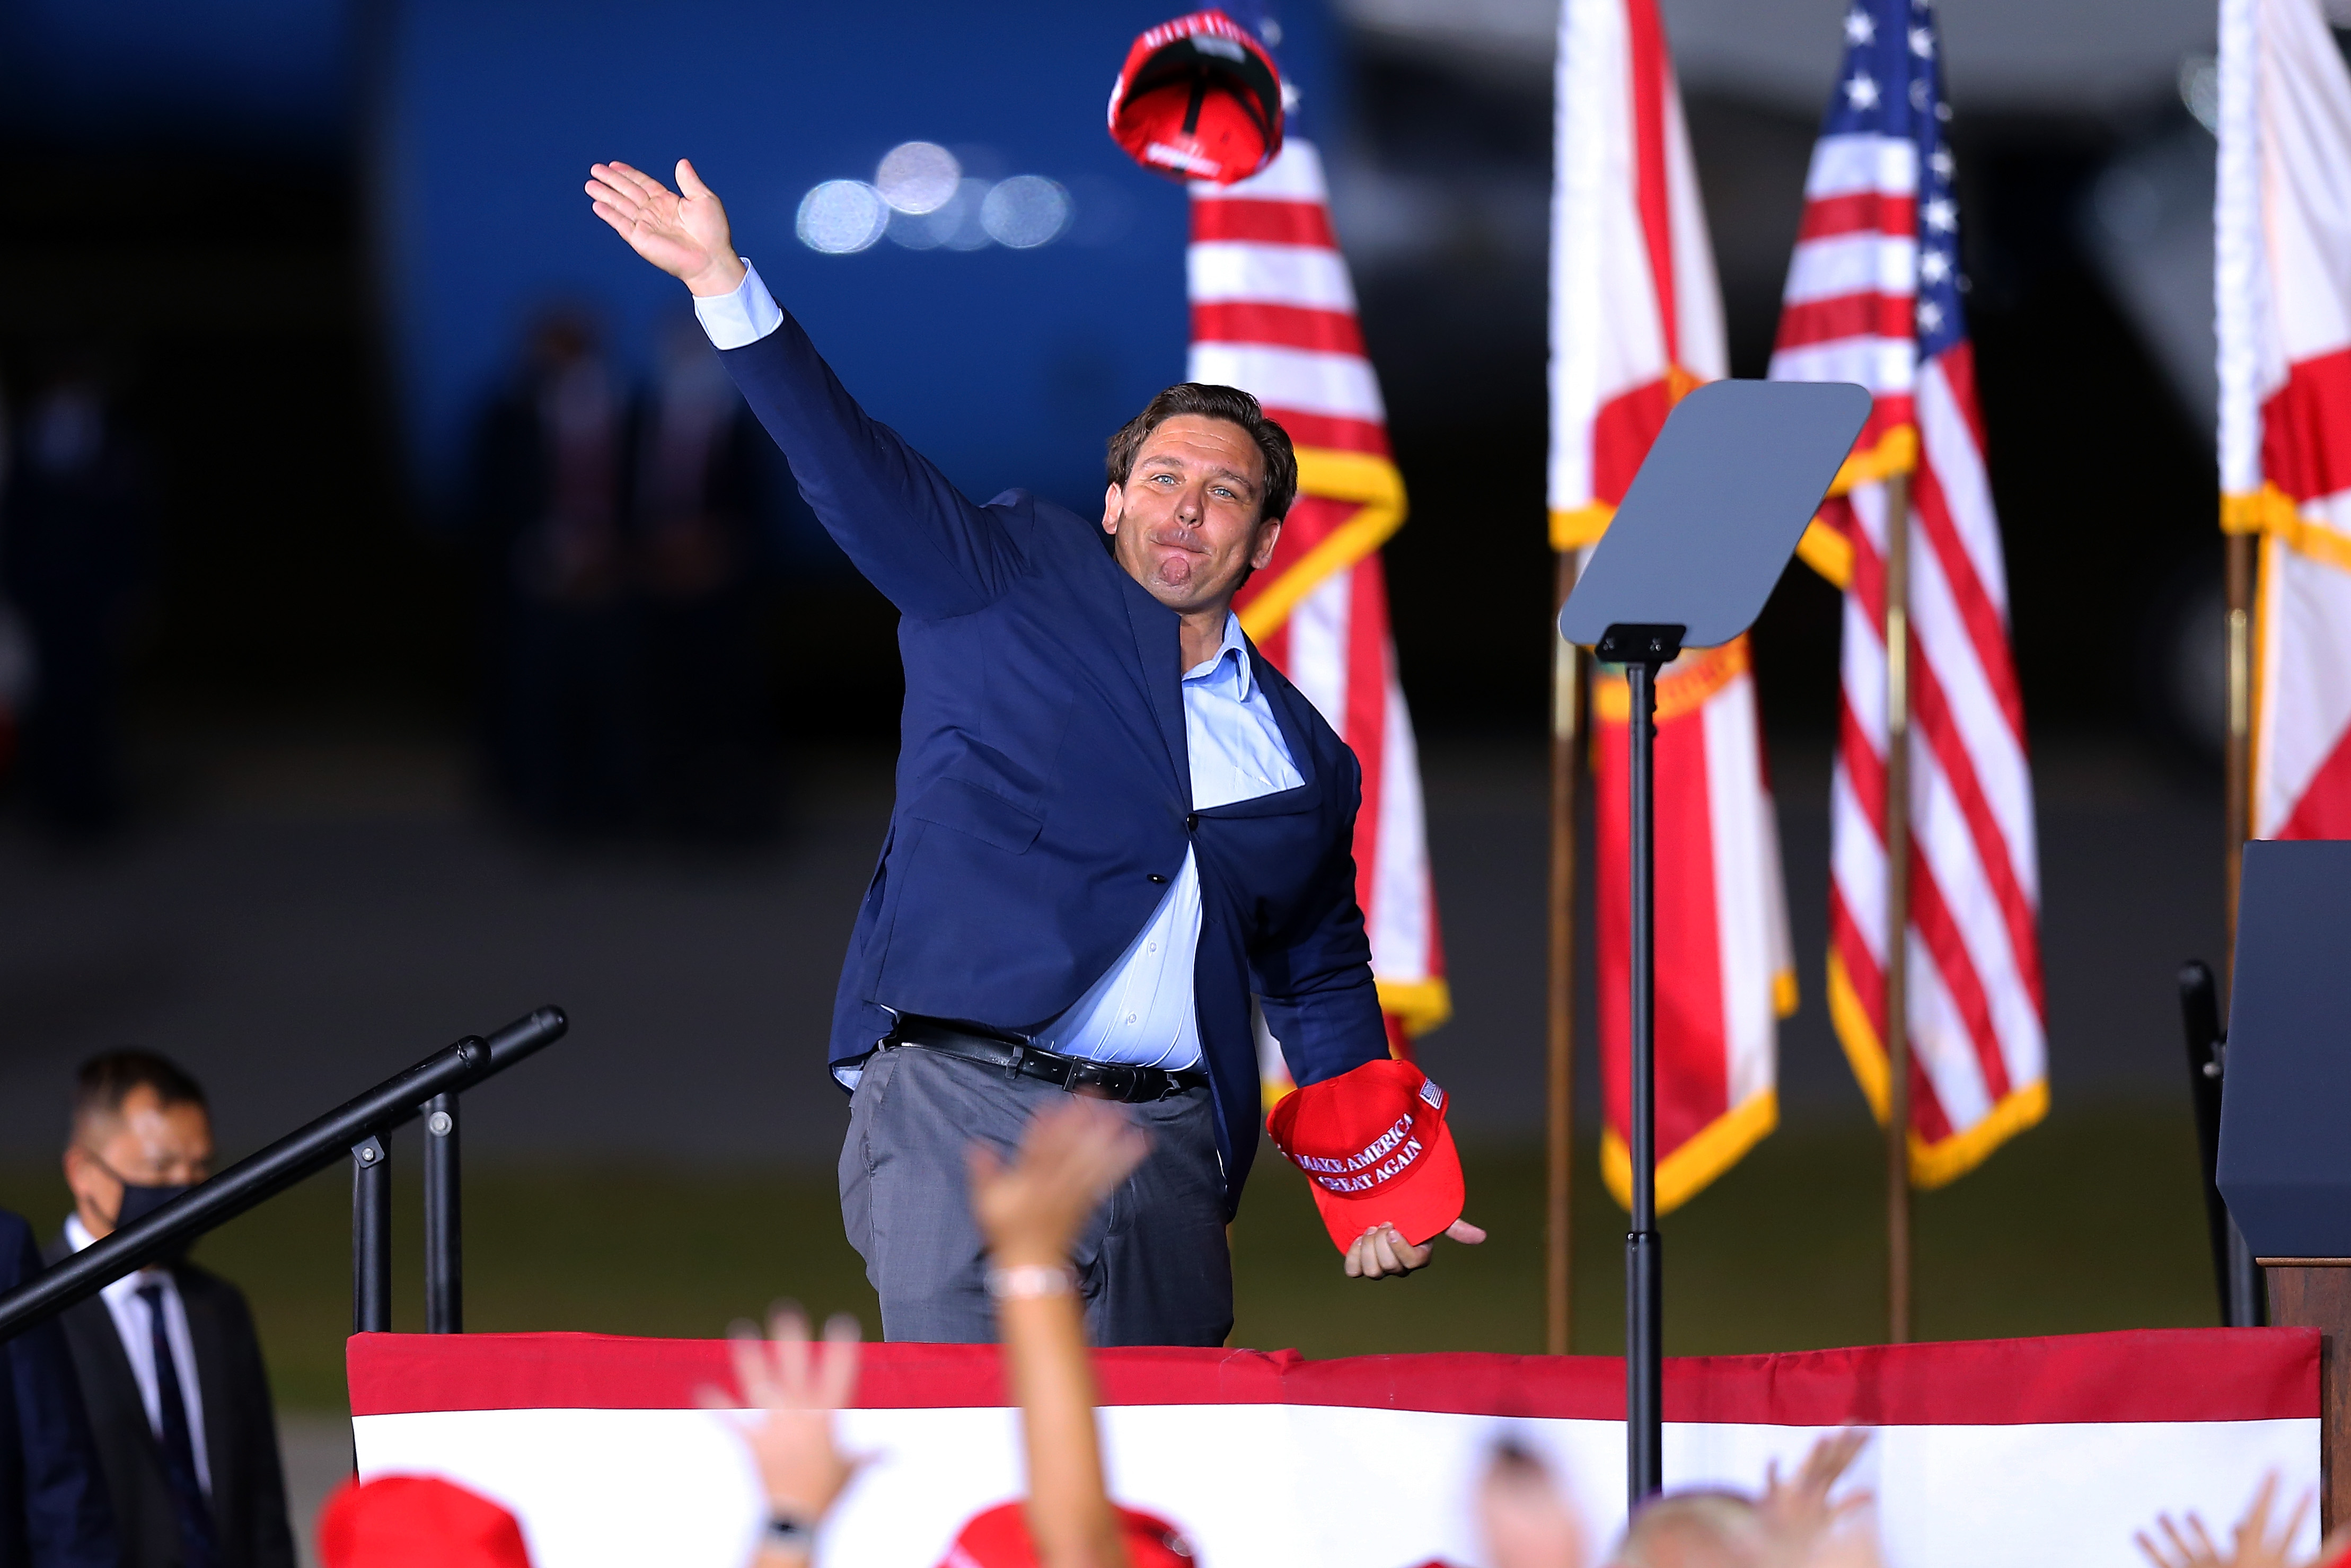 Florida Governor Ron DeSantis throws a hat to supporters during a rally for President Donald Trump on October 23, in Pensacola, Florida.